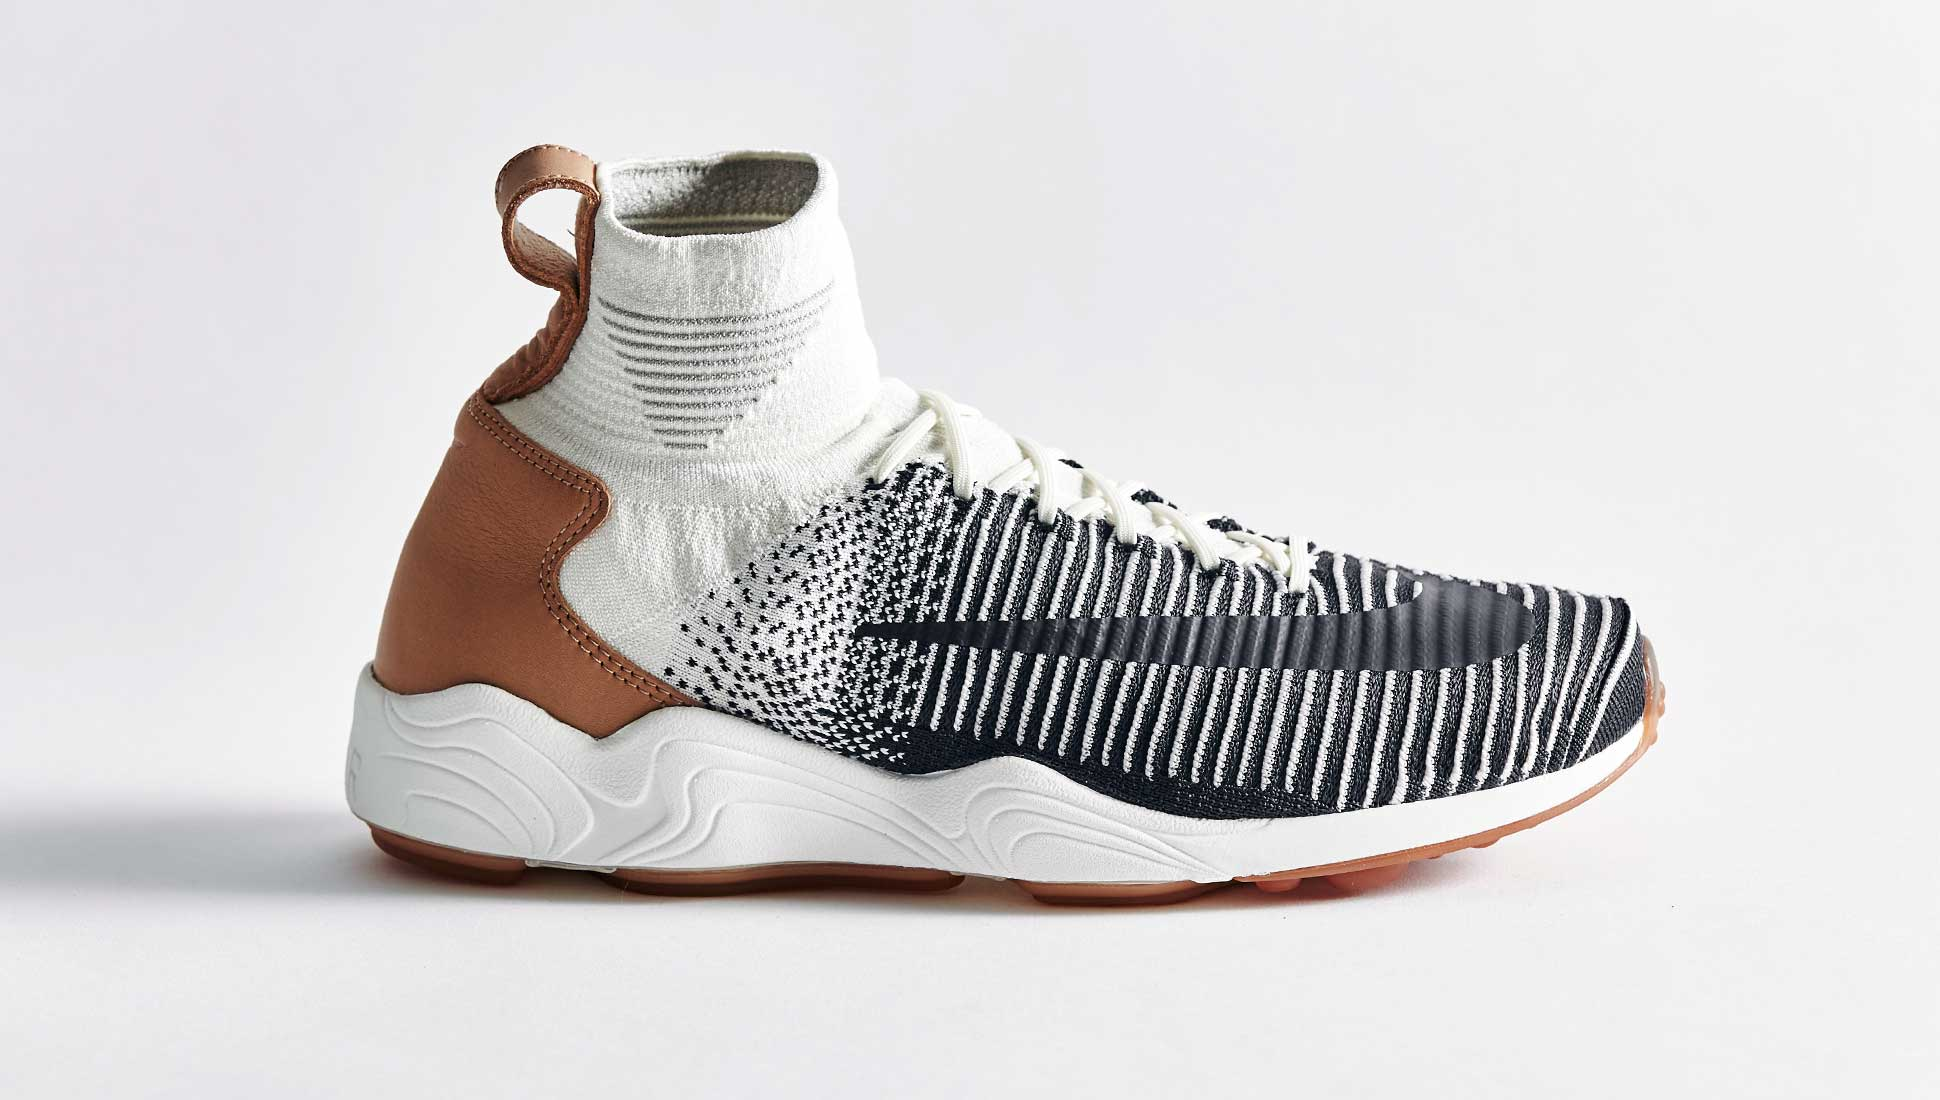 90265095 Nike Zoom Mercurial XI Flyknit Trainers - SoccerBible